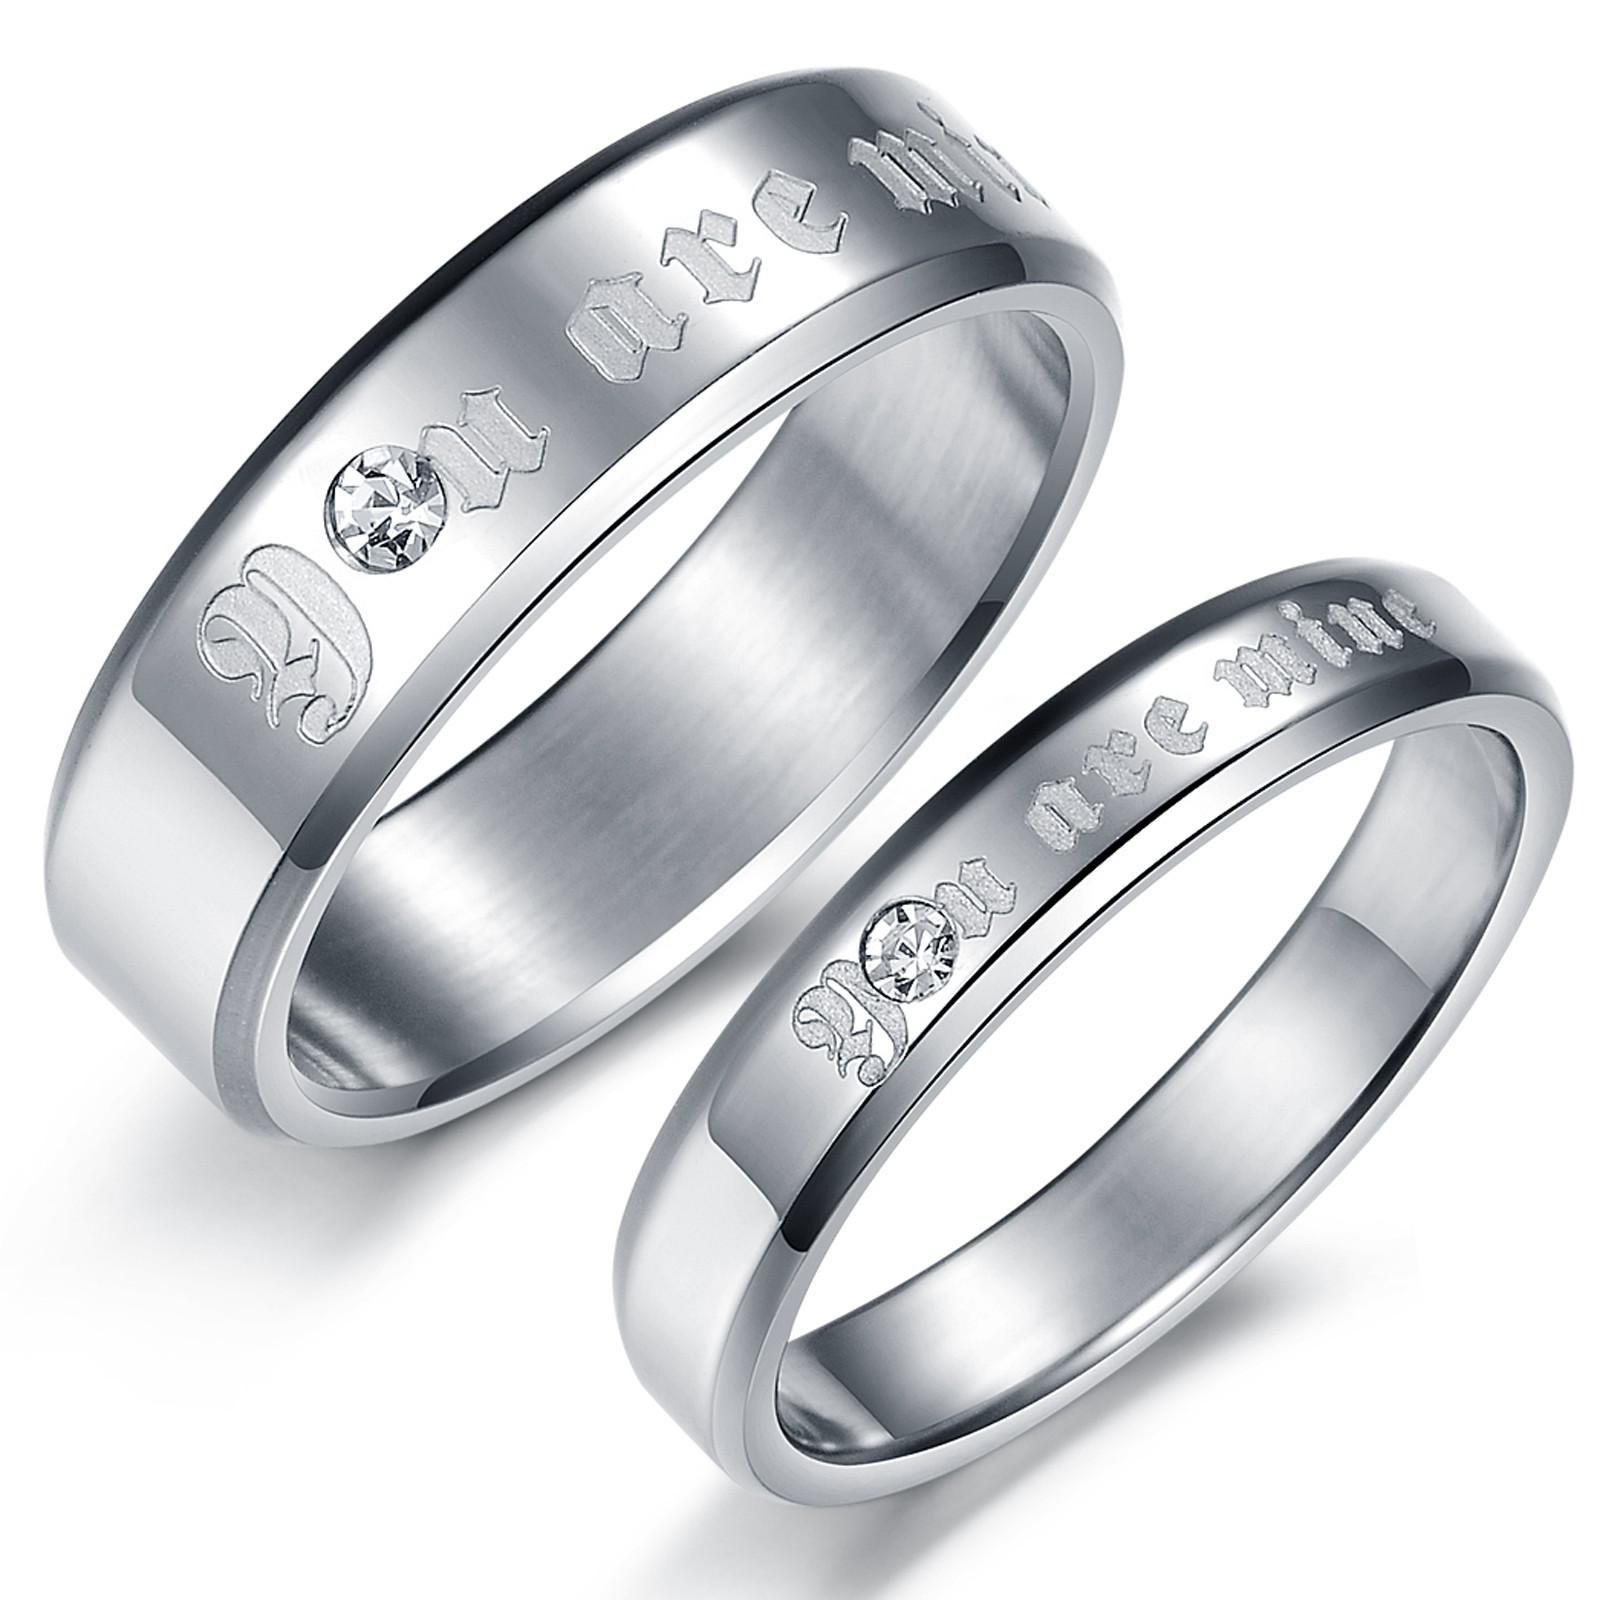 wedding engagement platinum couple evermarker com cz leaves amazoncom u design rings athelred unique for couples ring diamond promise stripe